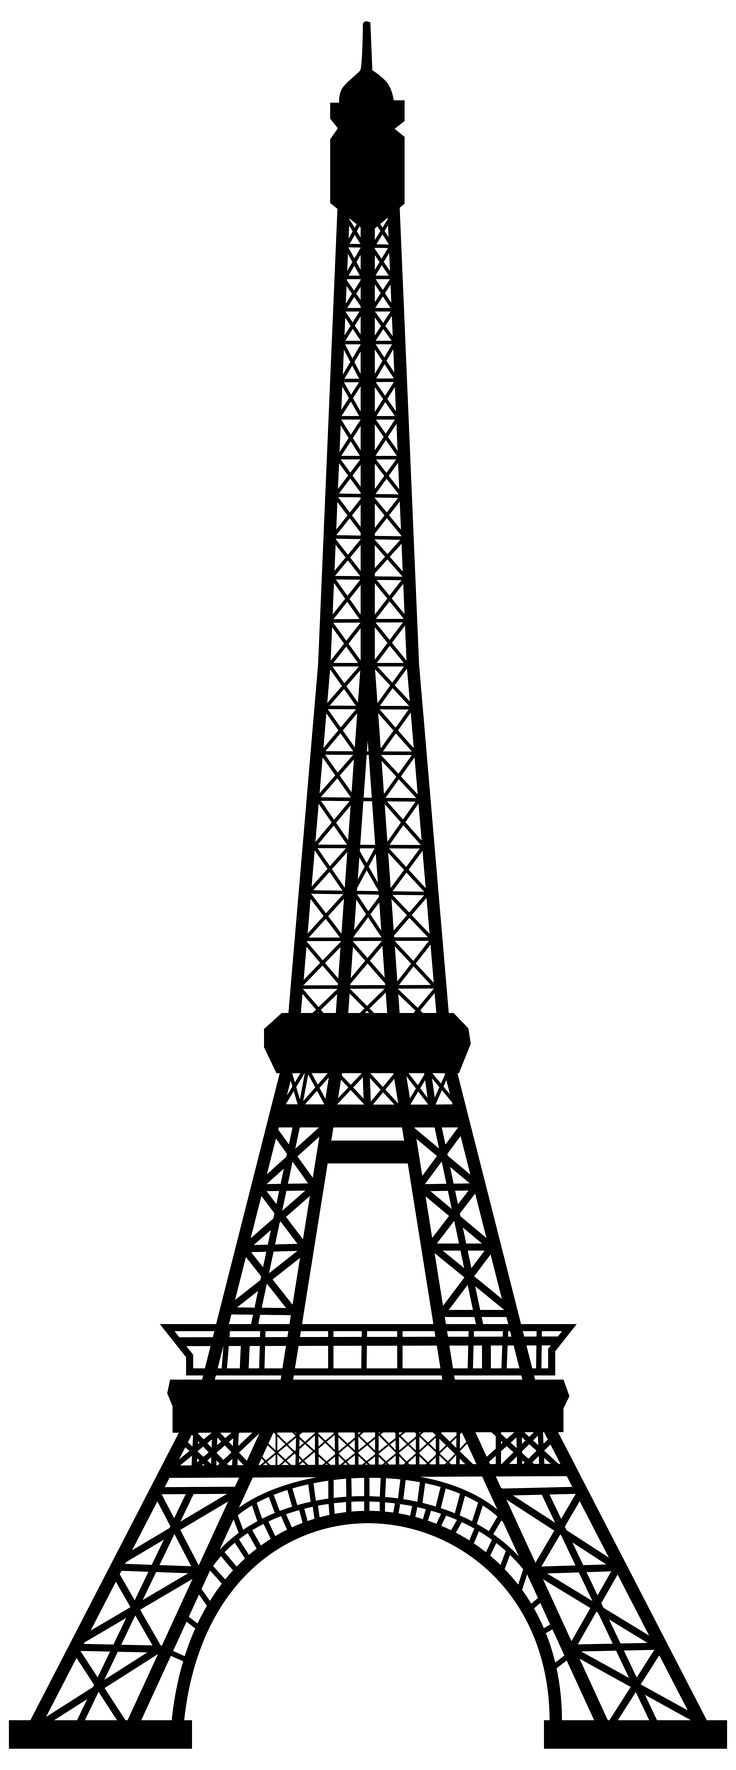 eifell tower drawing eiffel tower line drawing free download on clipartmag eifell tower drawing